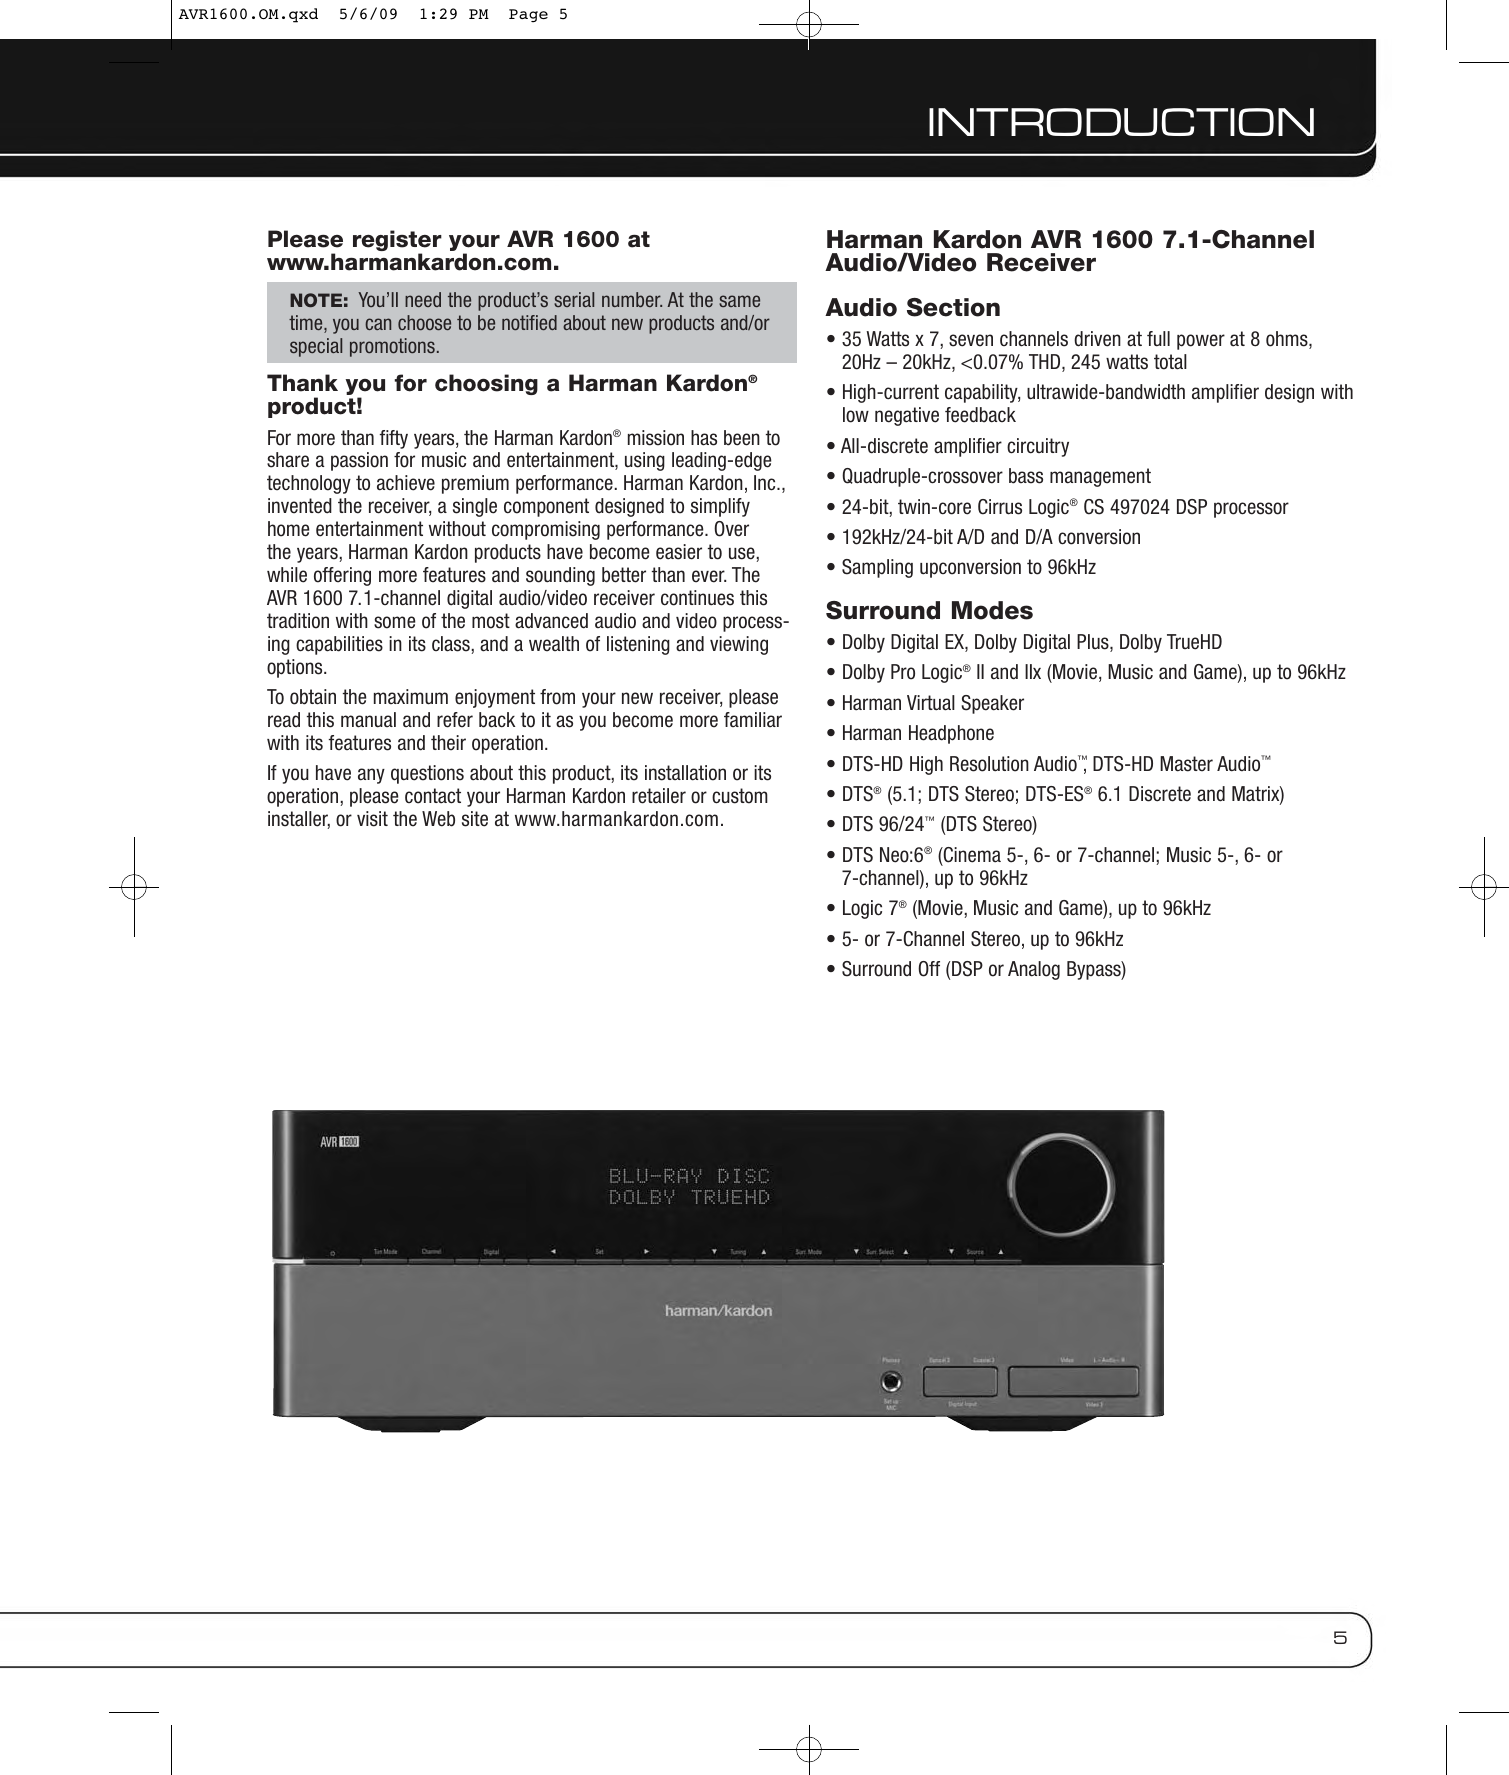 Harman Kardon Avr 1600 Users Manual AVR1600 OM Cover